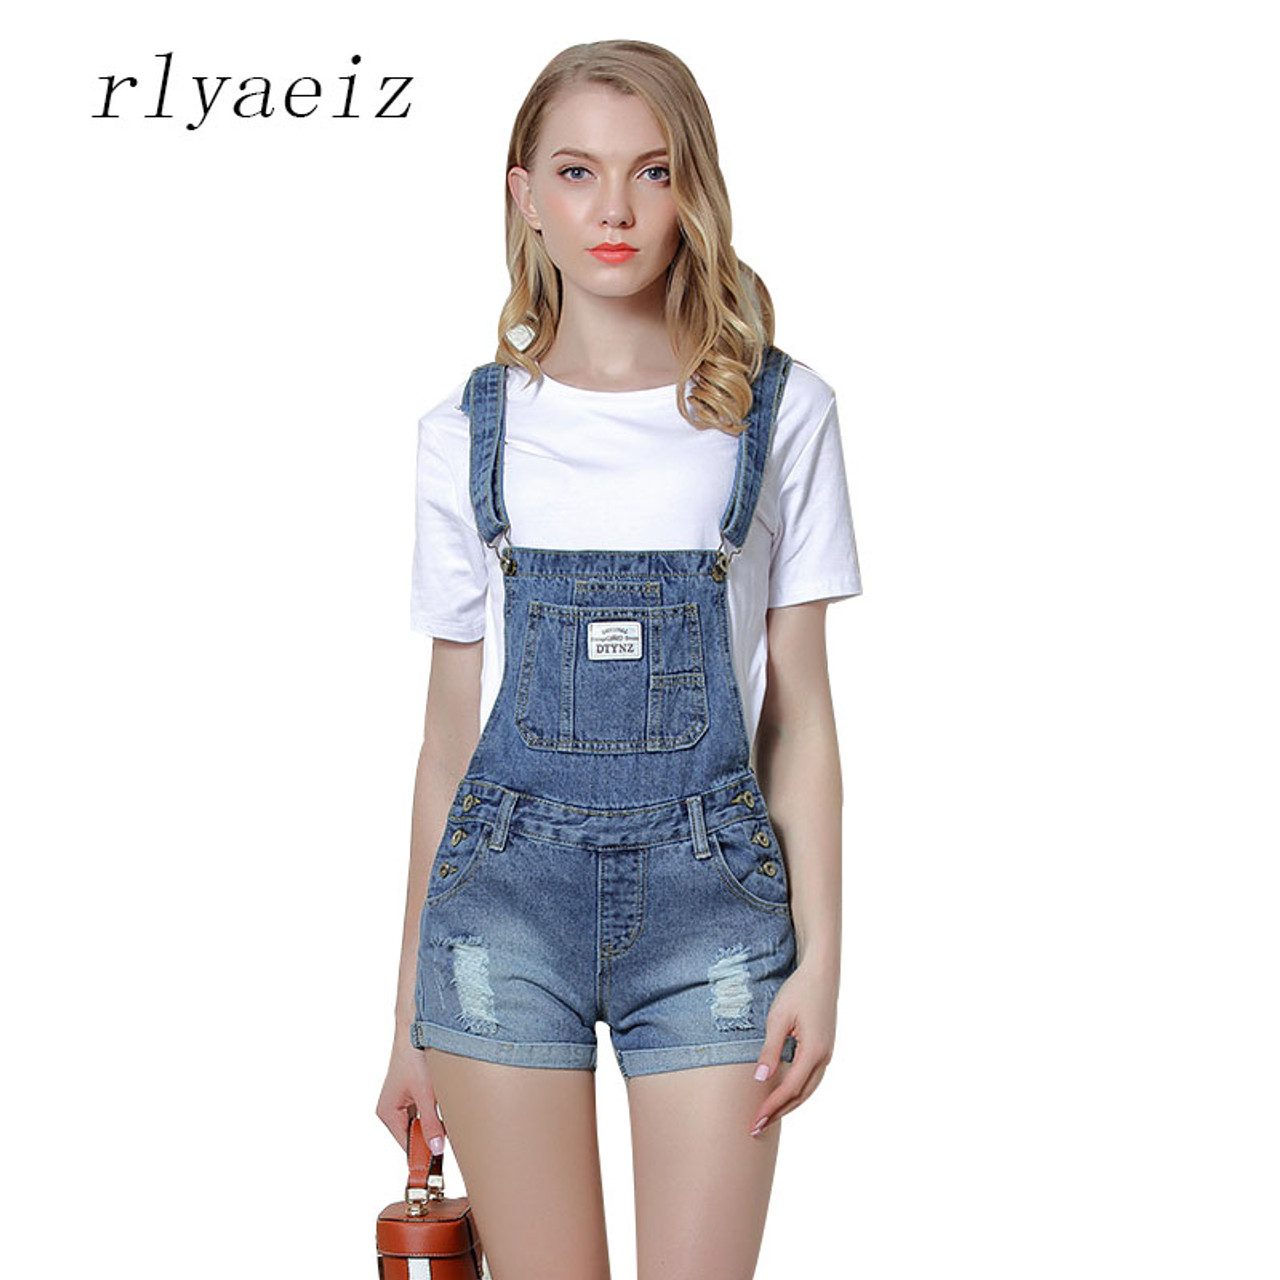 Rlyaeiz Rompers Womens Jumpsuit Body Feminino Suspender Jeans